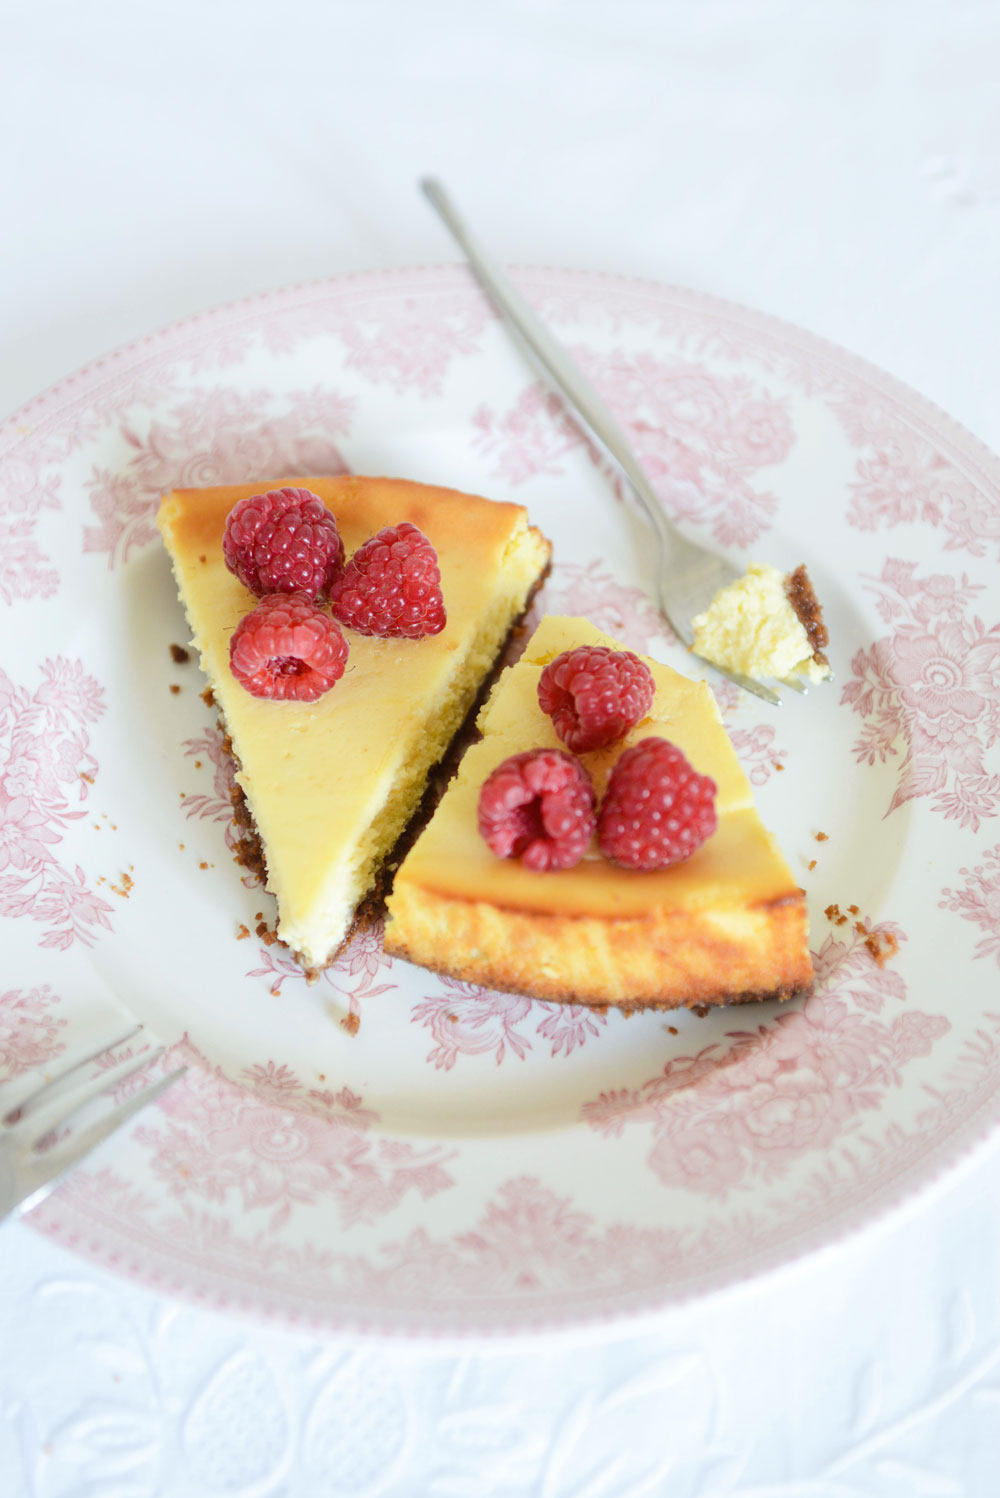 Ginger Cheesecake From Yvestown in the Kitchen, by Yvonne Eijkenduijn